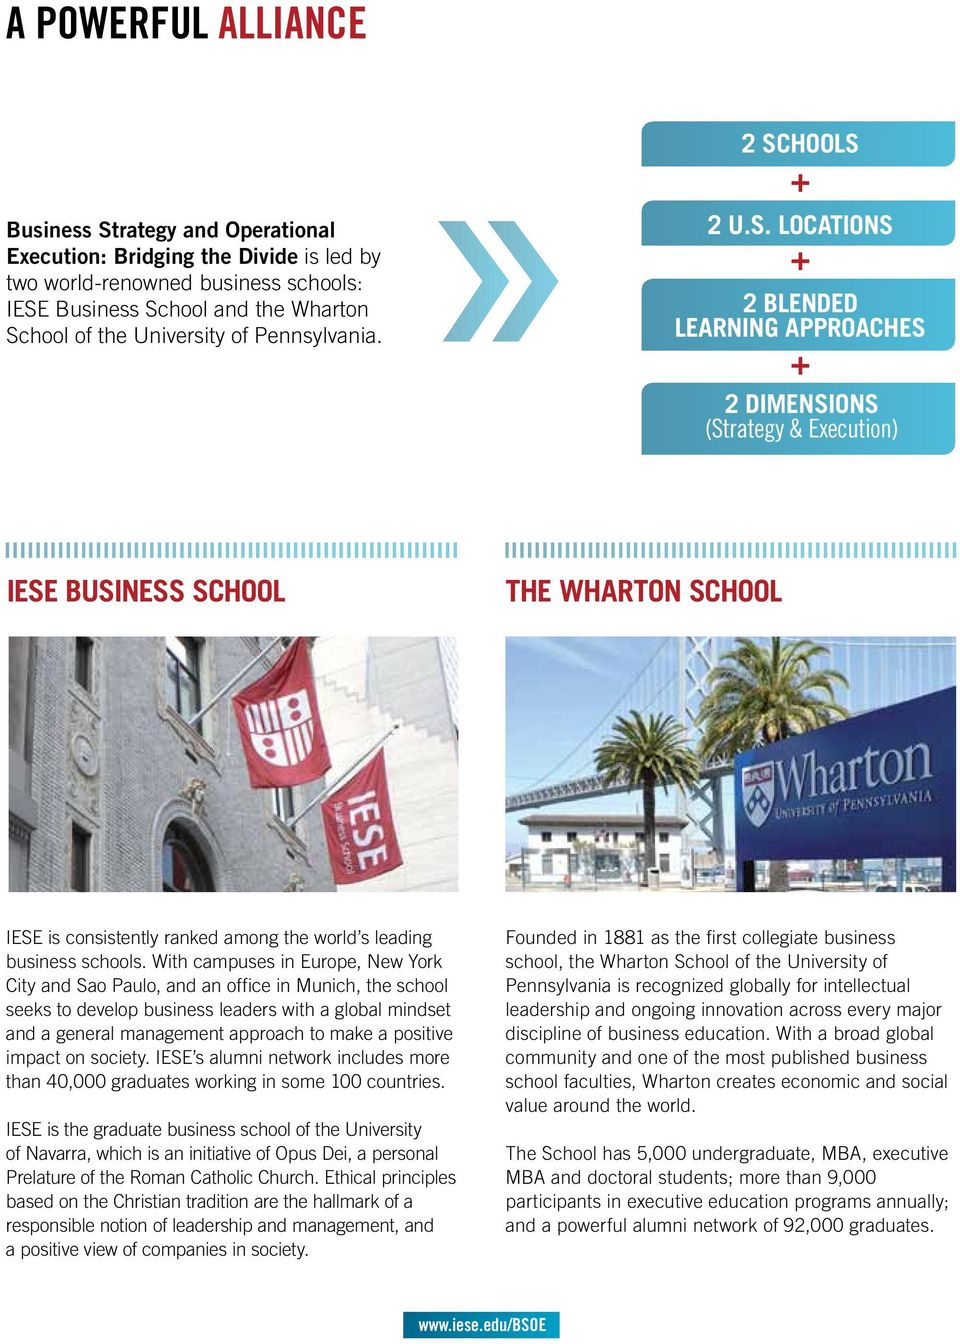 HOOLS + 2 U.S. LOCATIONS + 2 BLENDED LEARNING APPROACHES + 2 DIMENSIONS (Strategy & Execution) IESE BUSINESS SCHOOL THE WHARTON SCHOOL IESE is consistently ranked among the world s leading business schools.